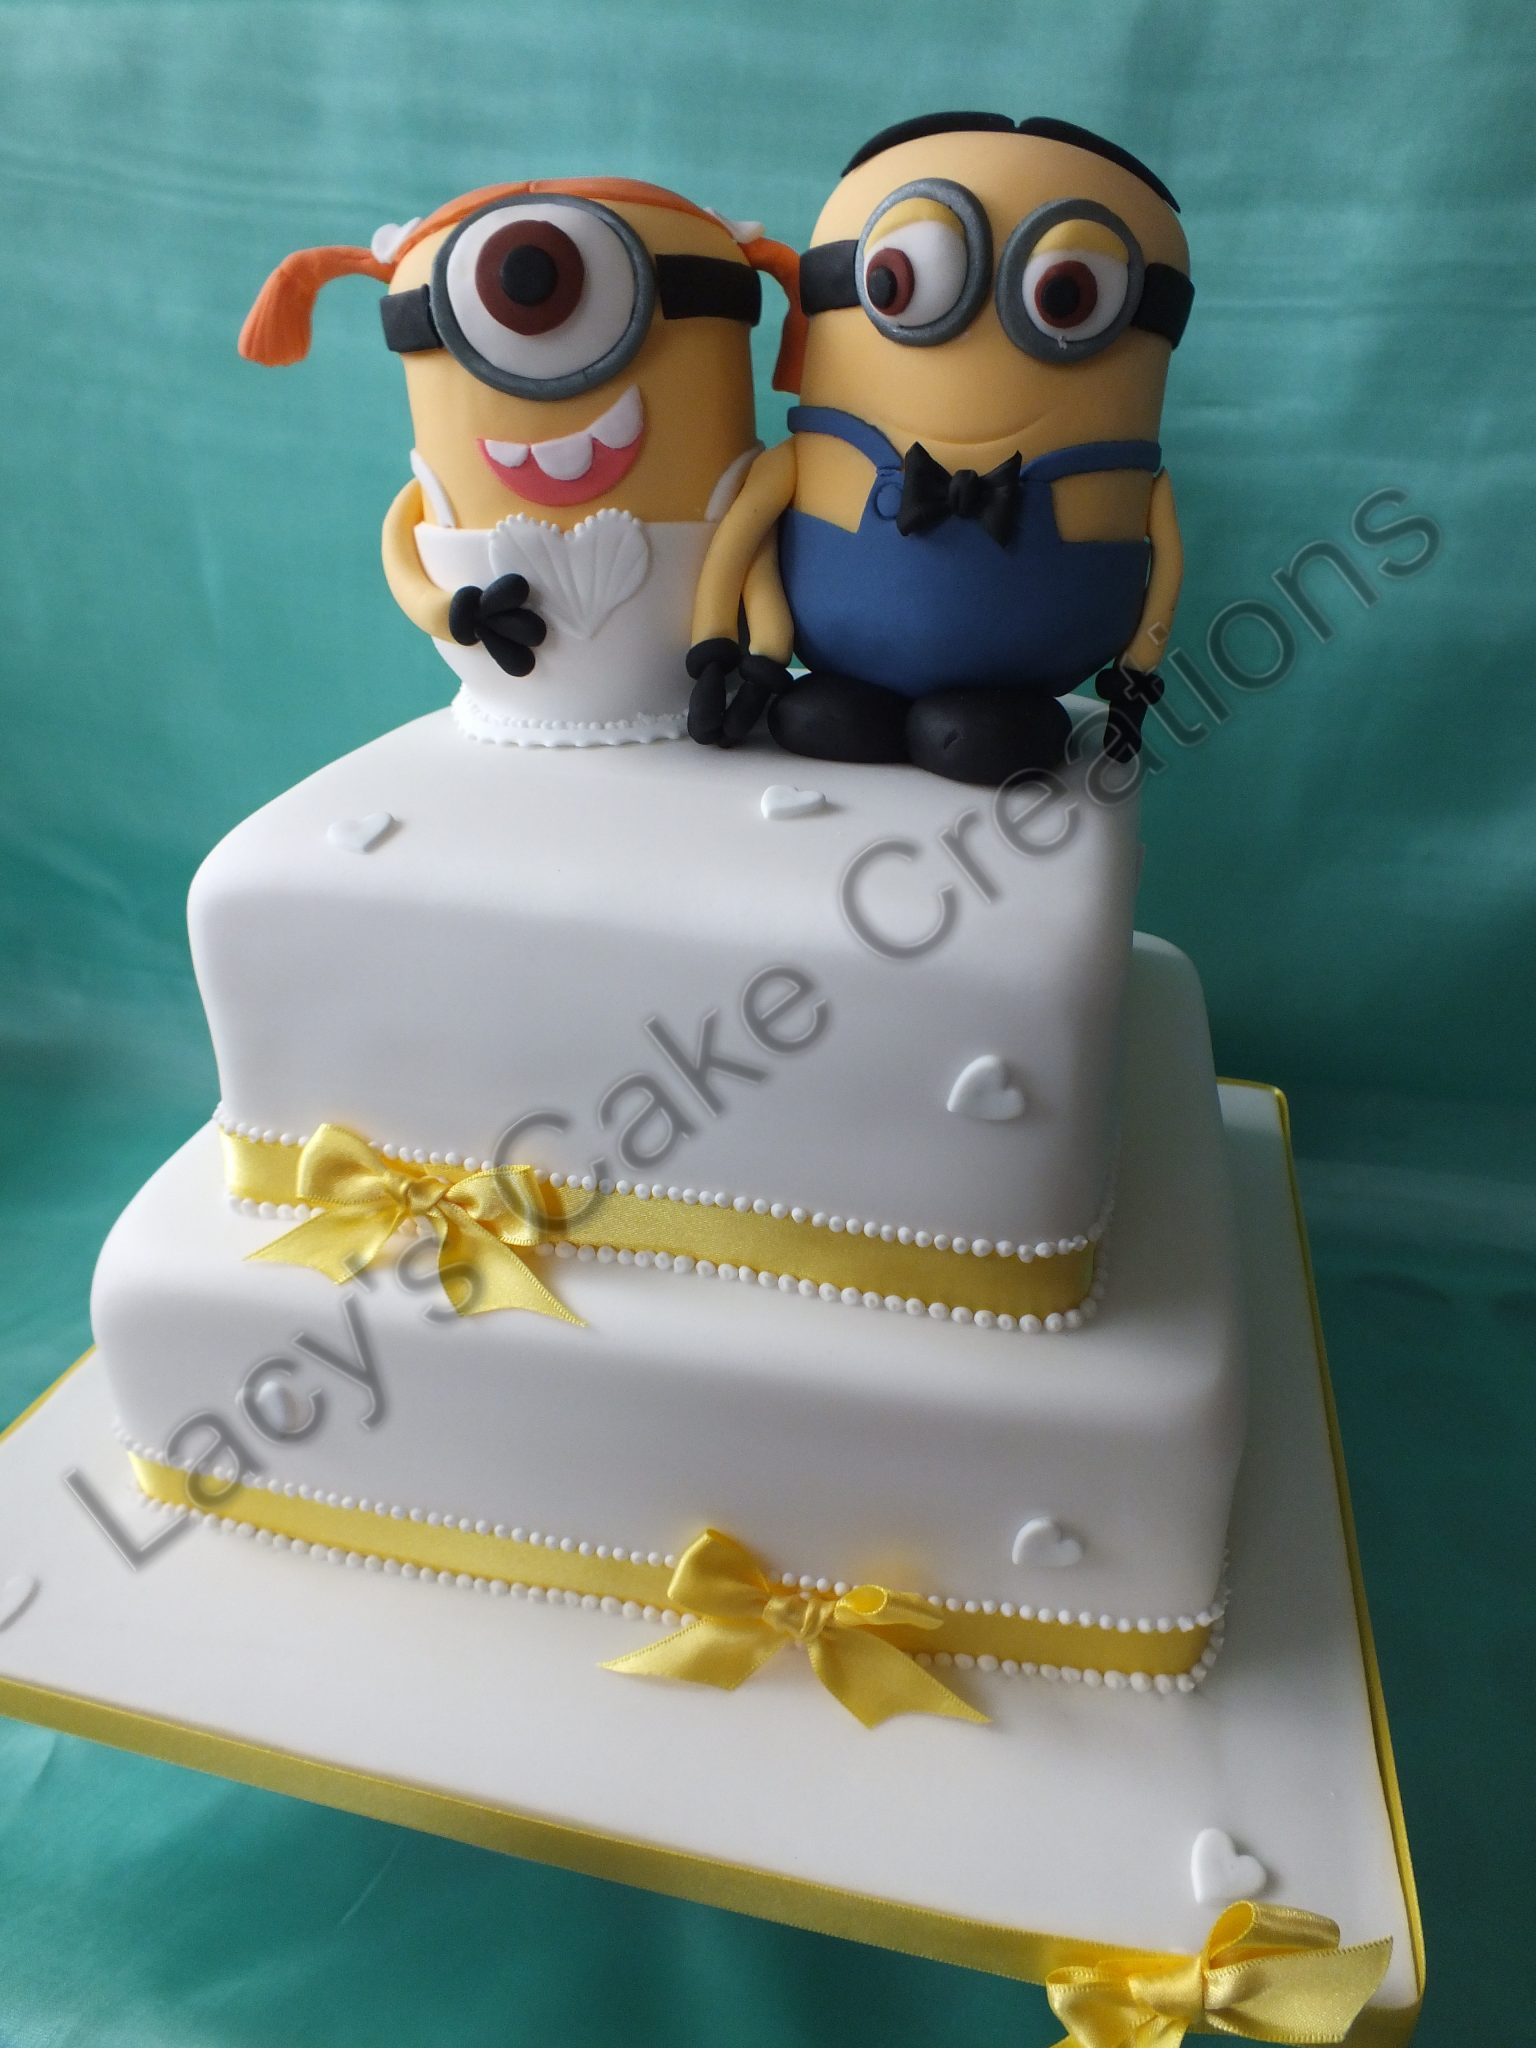 how to make a minion wedding cake topper wedding cakes and engagements lacy s cake creations 15822